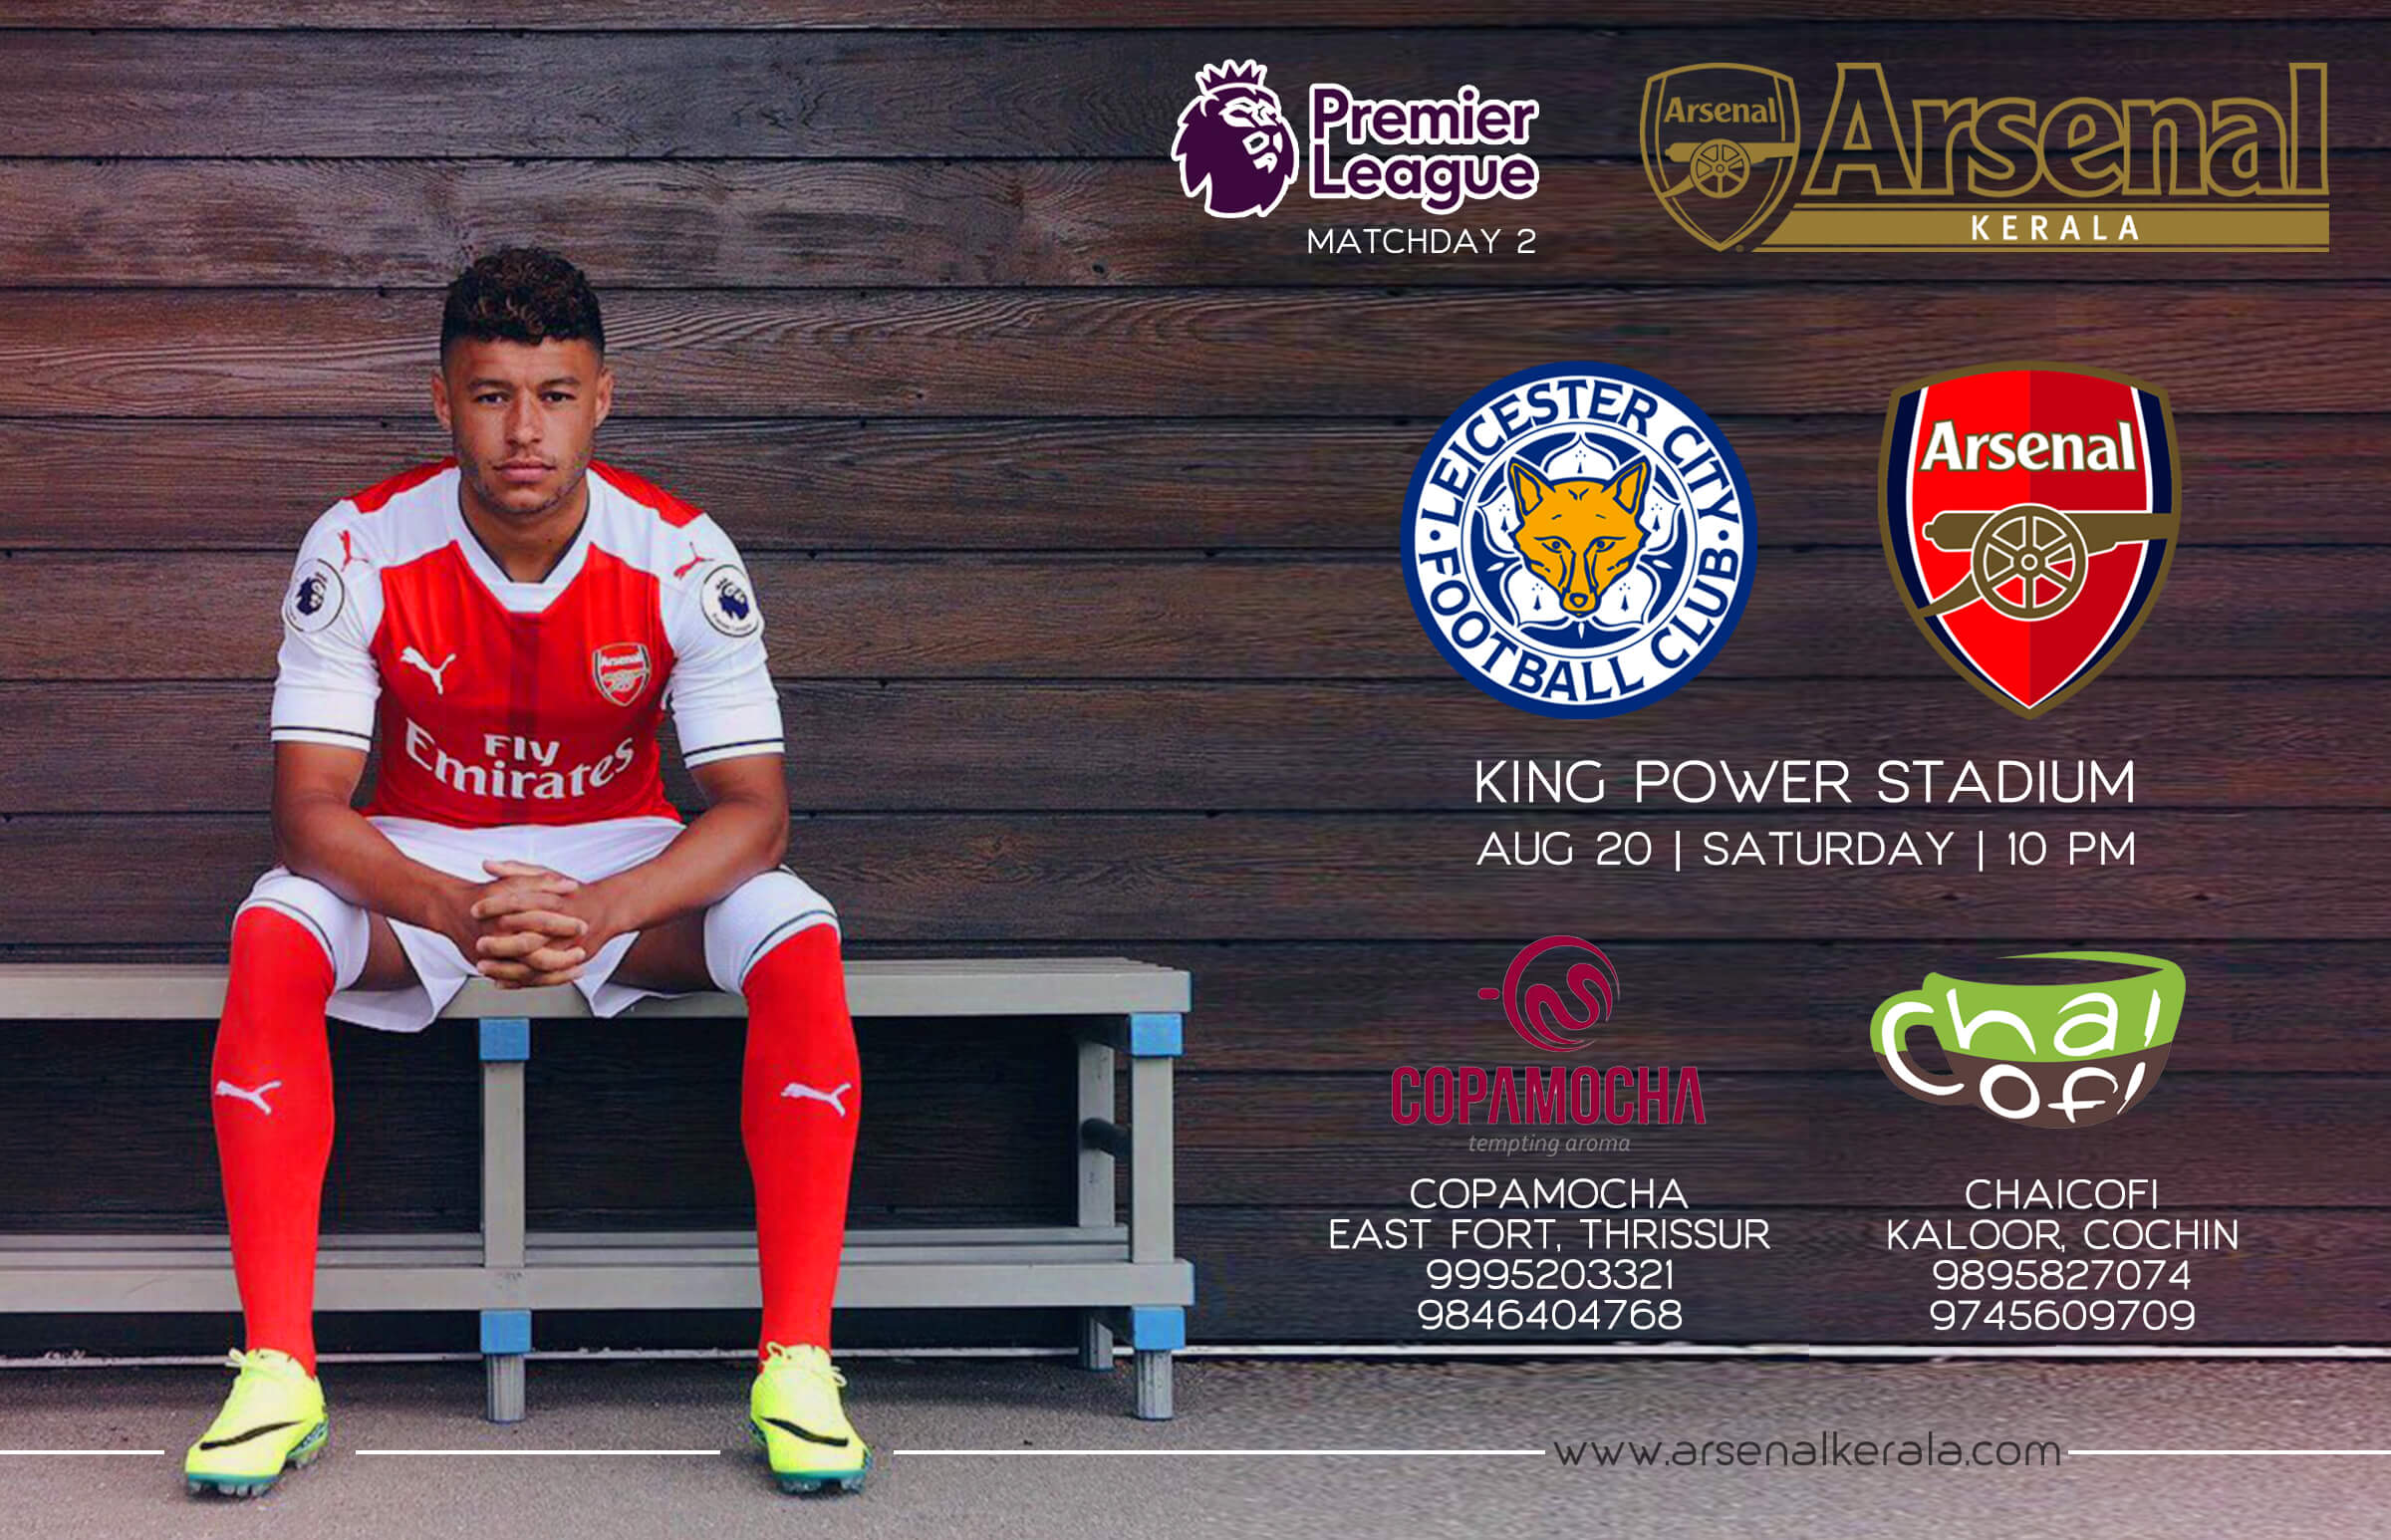 Leicester City Vs Arsenal Where To Watch What To Look Forward To Arsenal Supporters Club